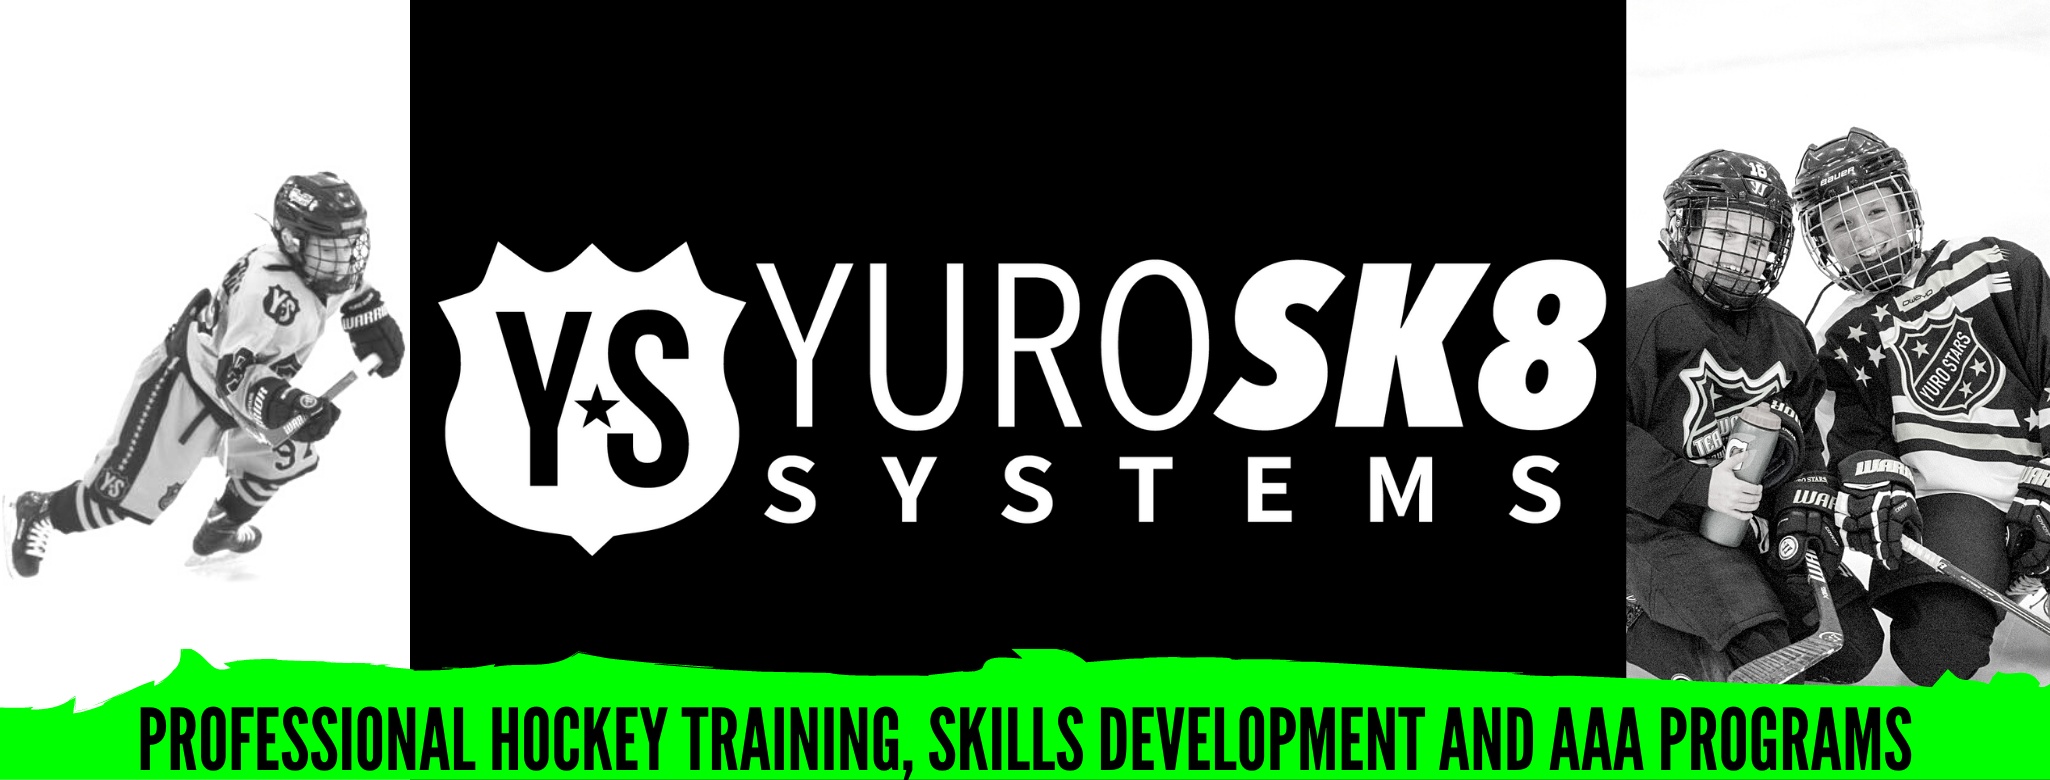 Professional hockey training  skills development and aaa programs